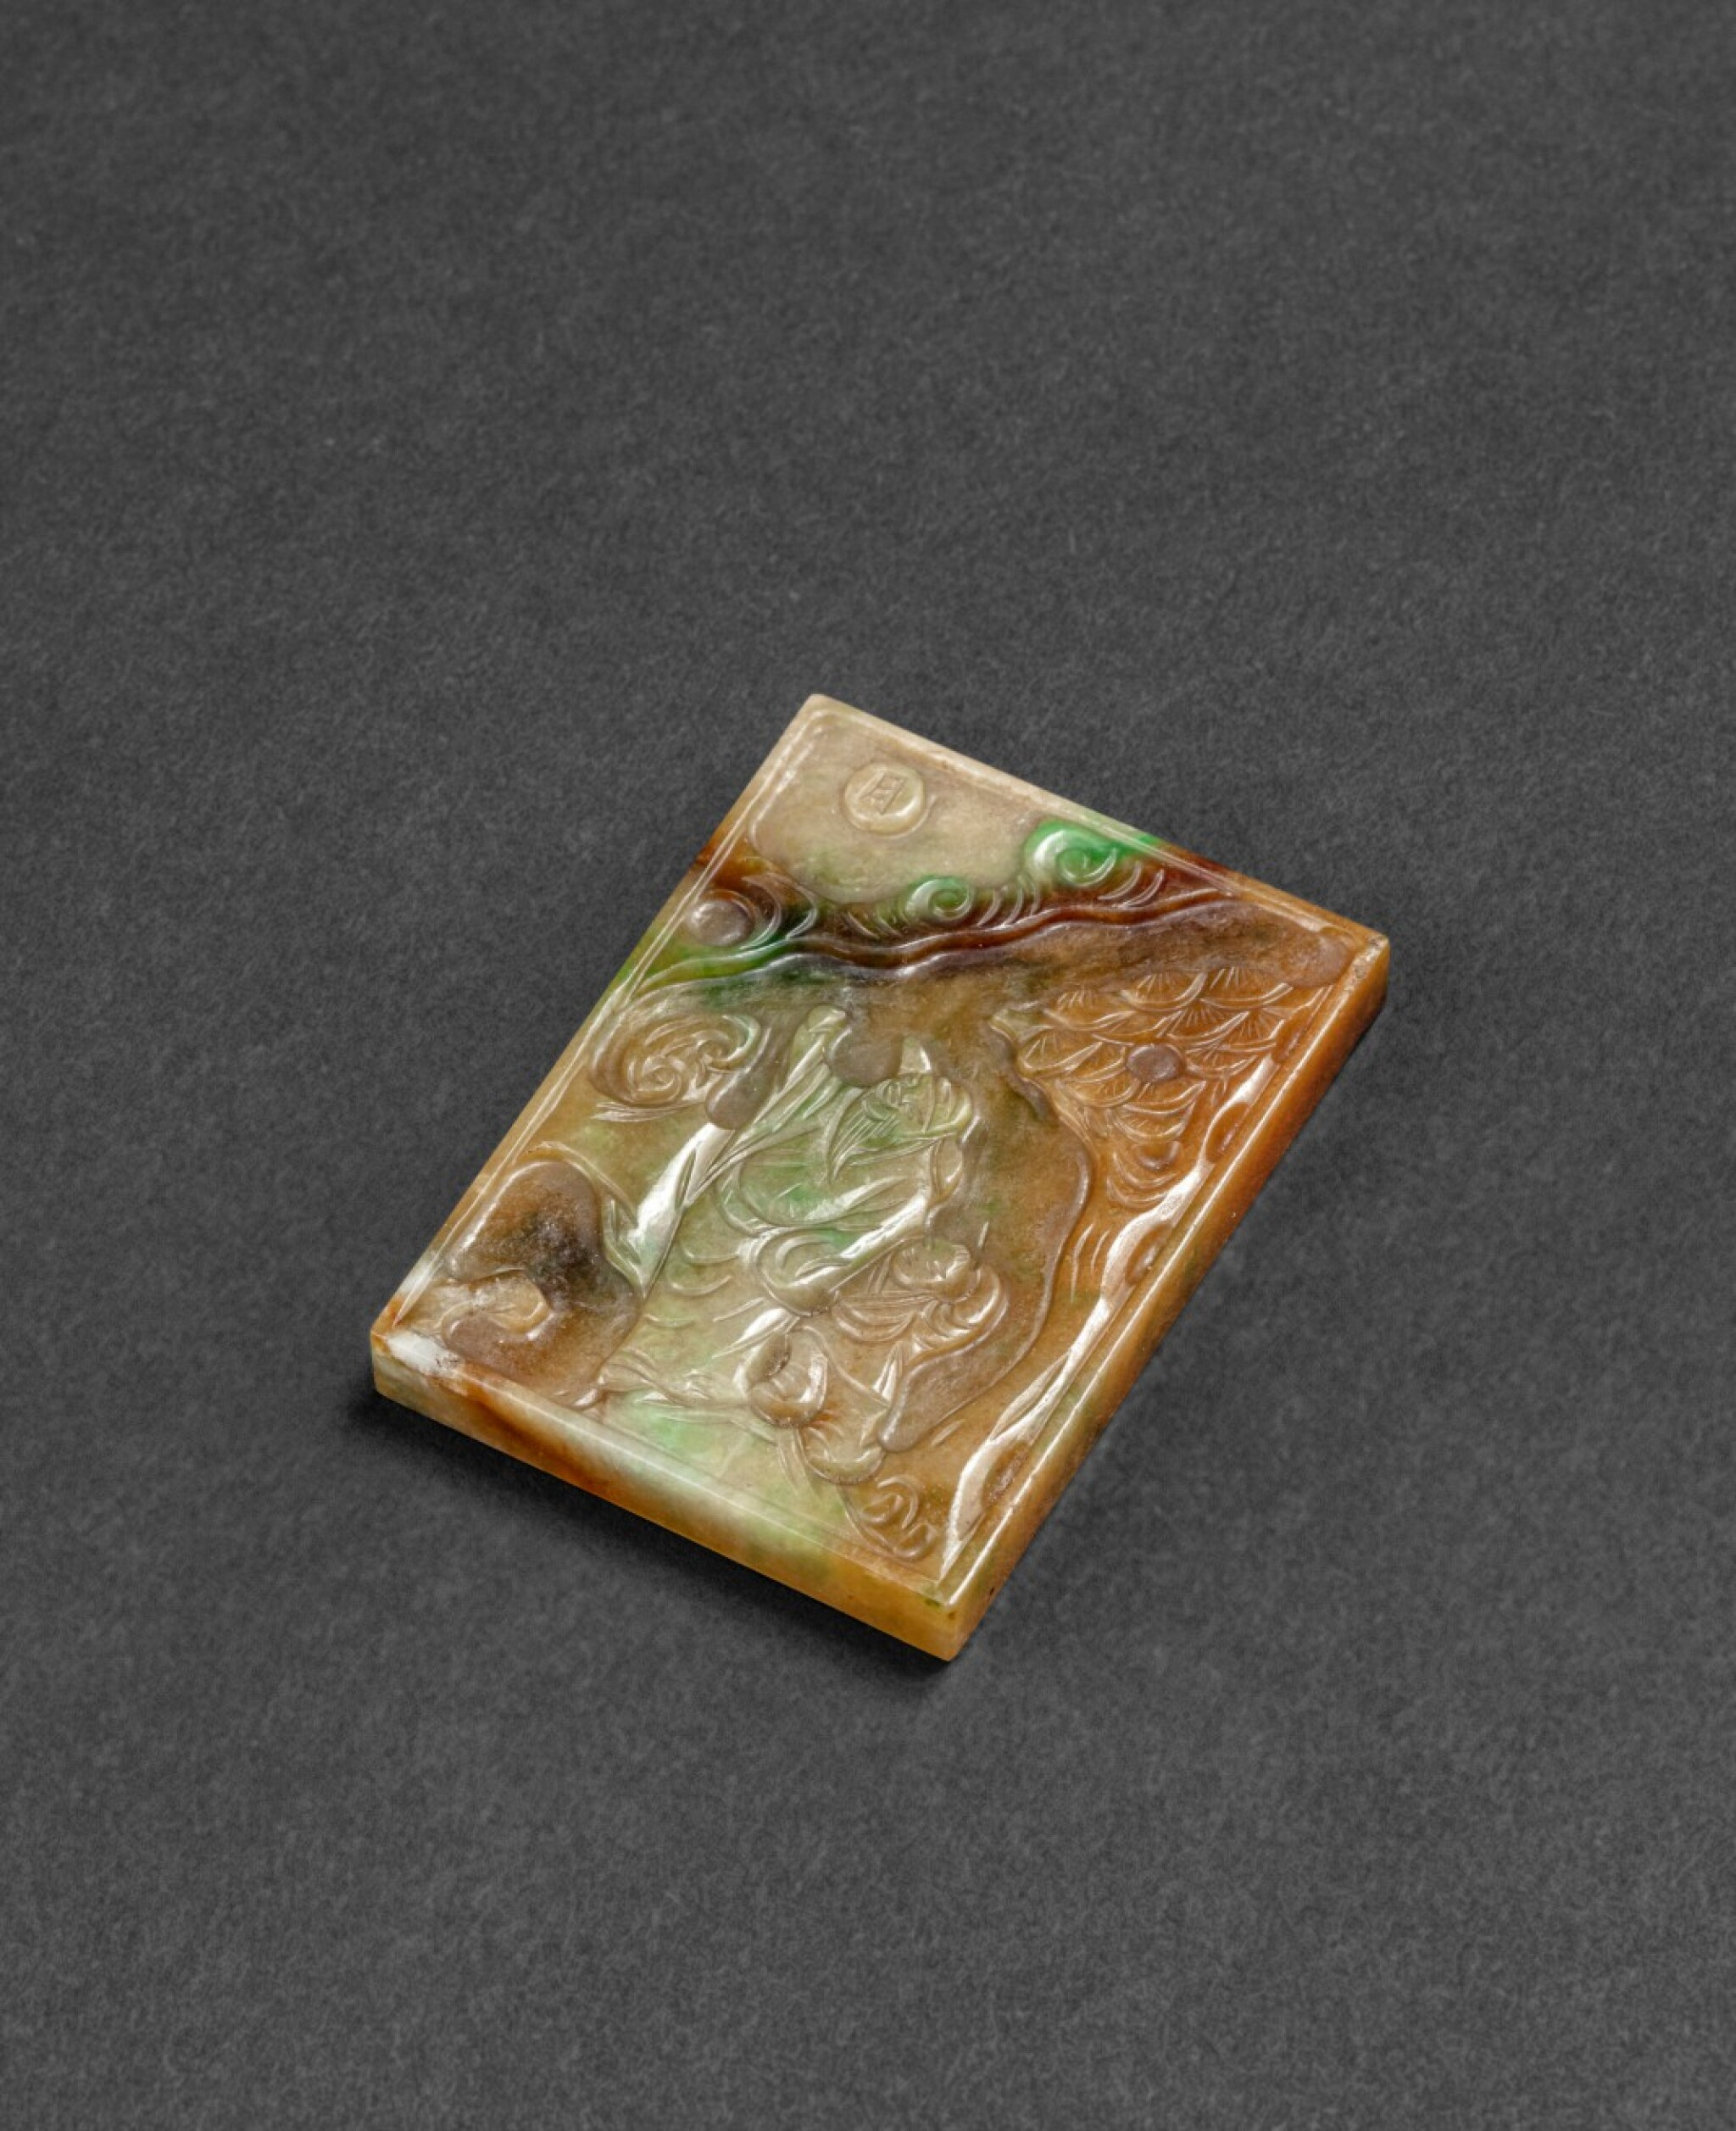 View 1 of Lot 62. Plaque en jadéite sculptée Fin de la dynastie Qing | 清晚期 翠玉雕人物故事圖牌 | A russet and apple-green 'scholar and boy' jadeite plaque, late Qing Dynasty.